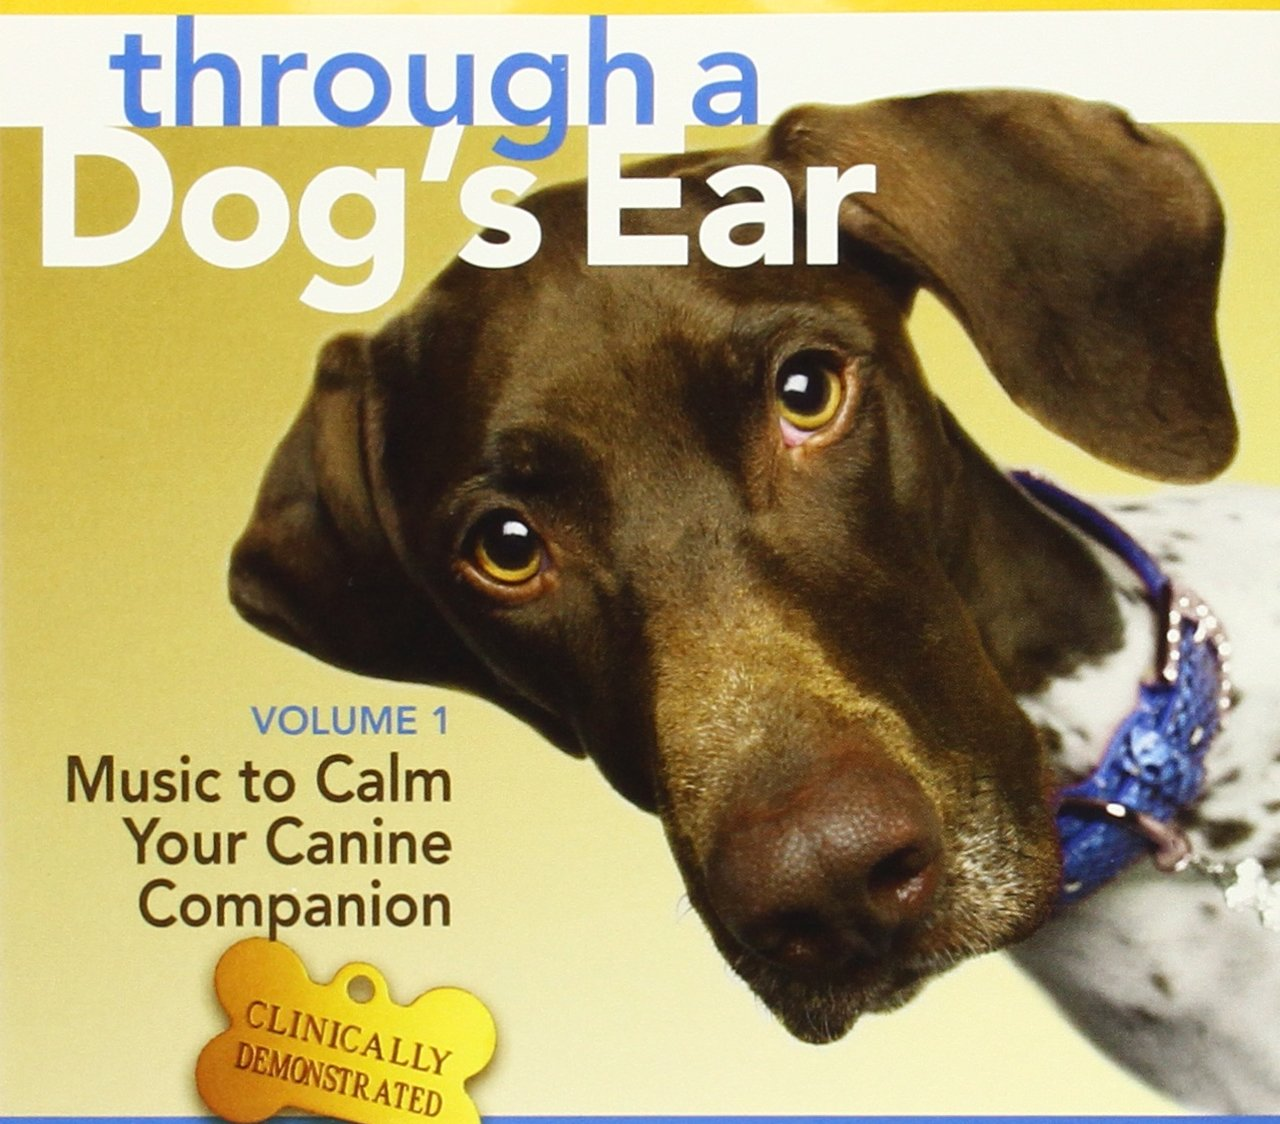 Through A Dog's Ear: Vol 1, Music To Calm Your Canine Companion by imusti